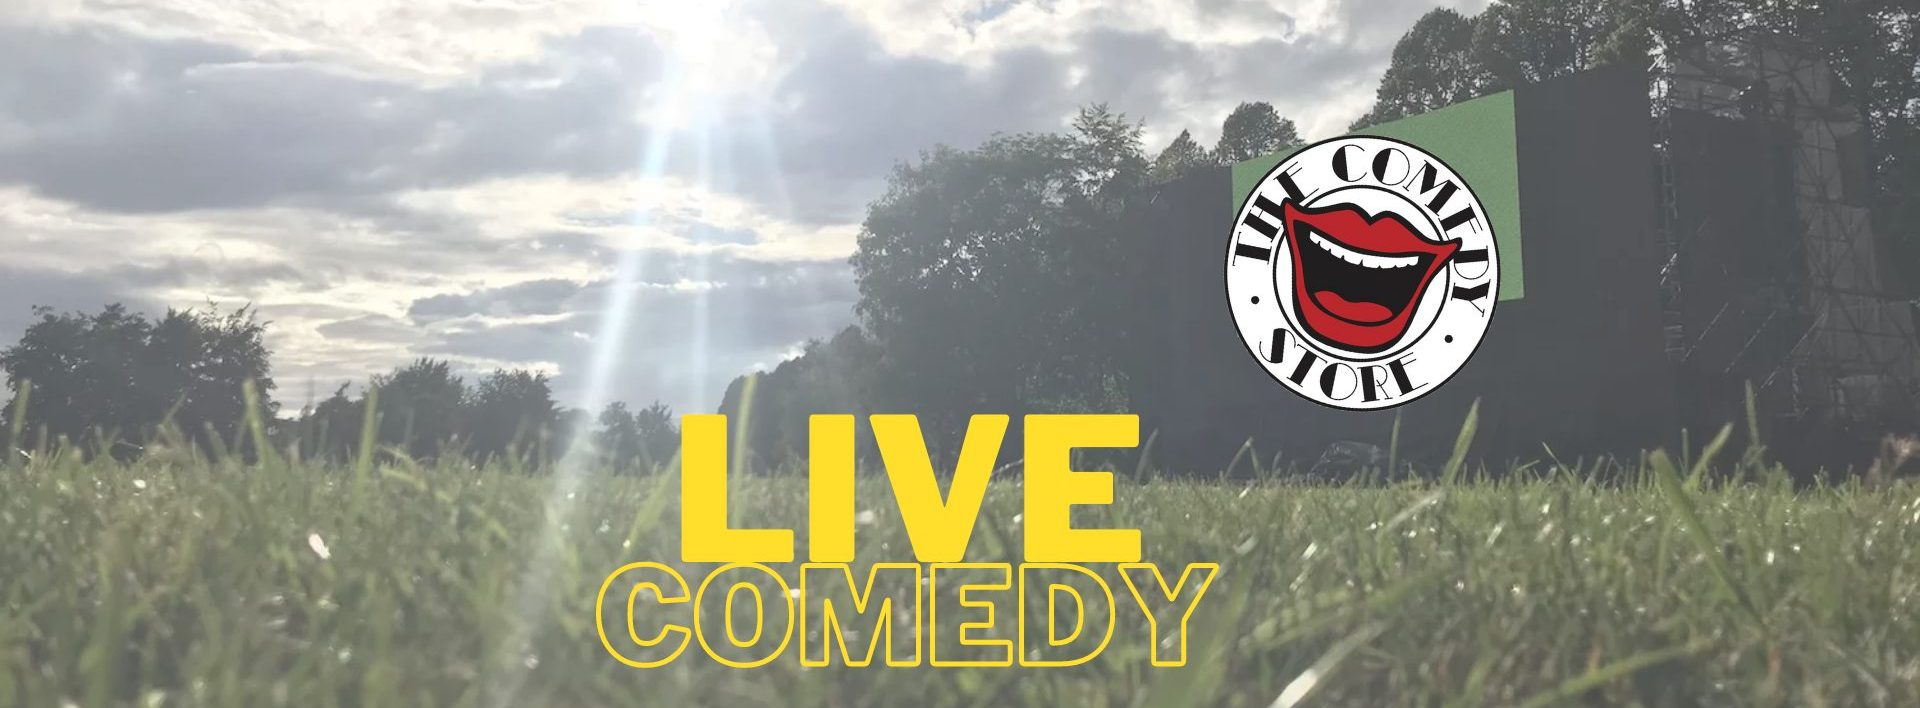 Live Comedy at Hatfield House